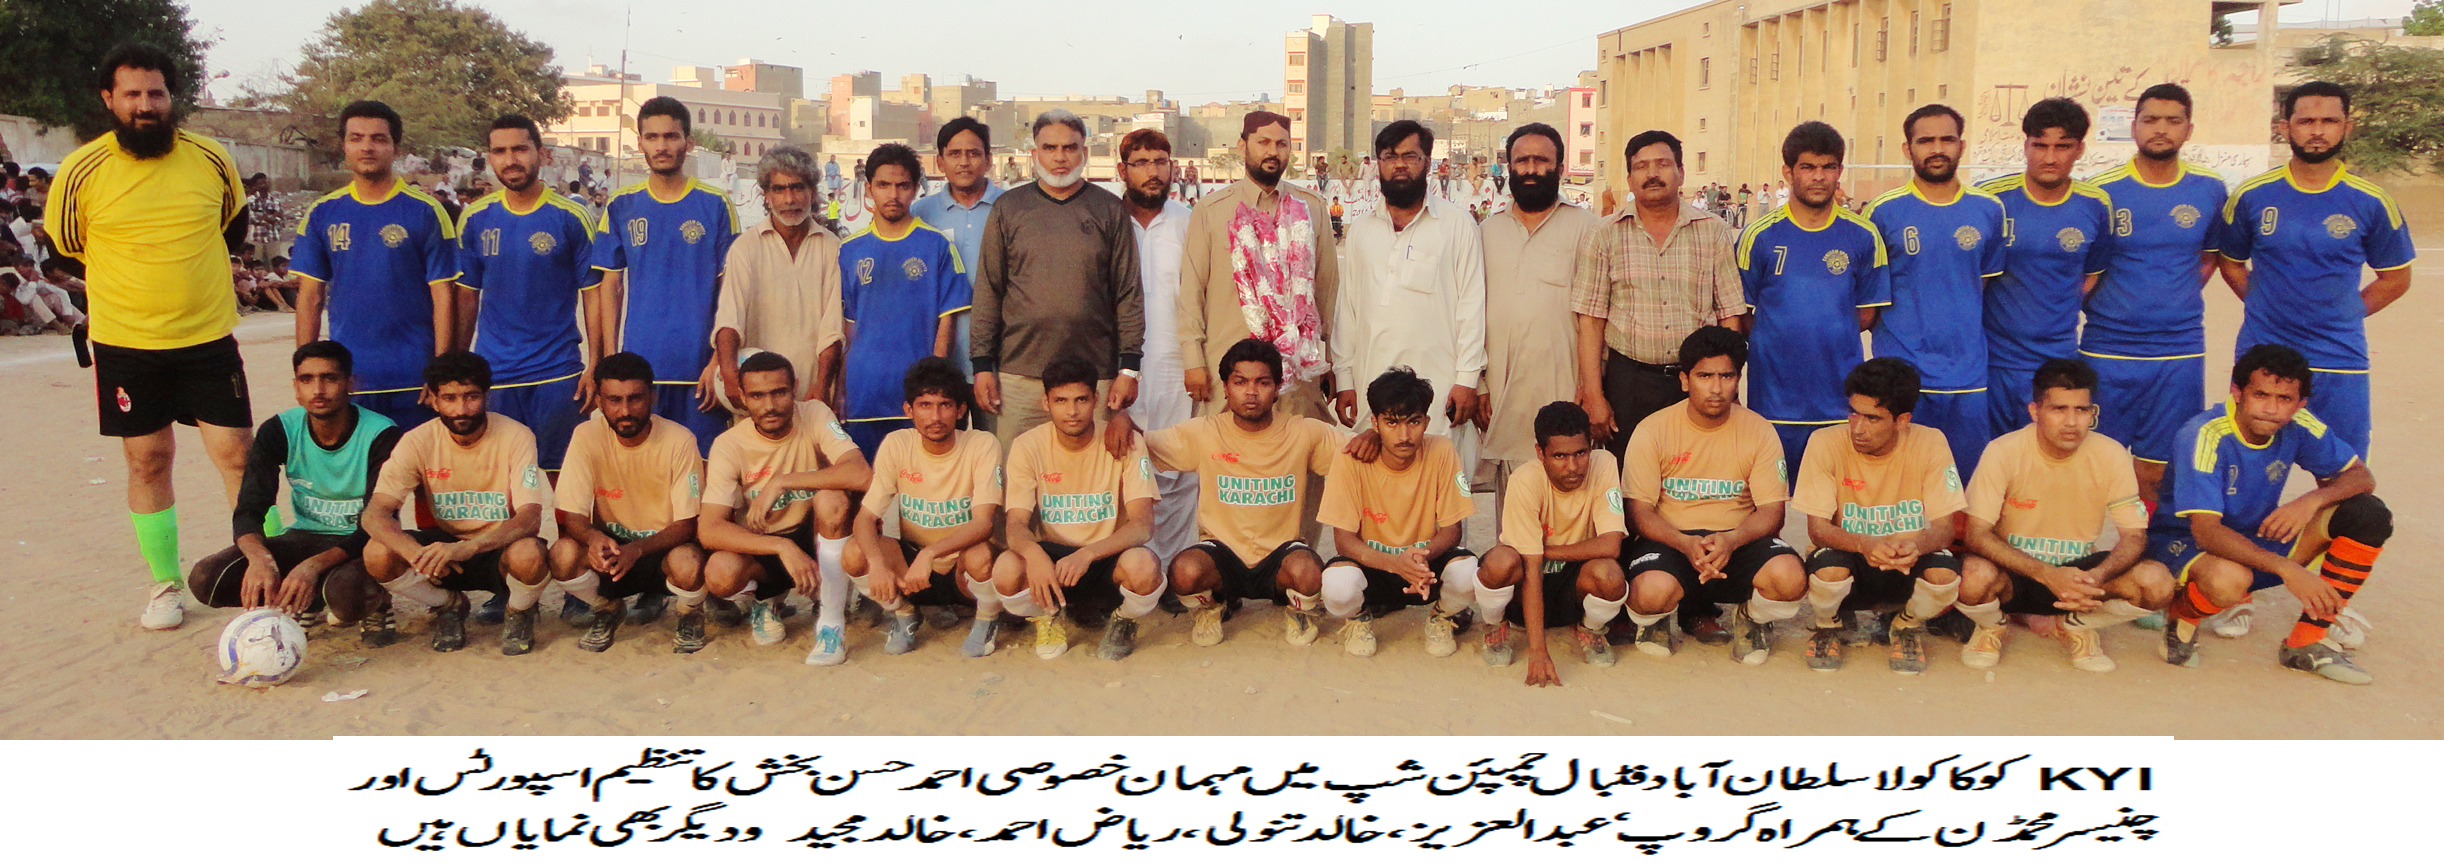 Coca-Cola Sultanabad Championship: Chanesar Blue and Tanzeem Sports to face-off in final